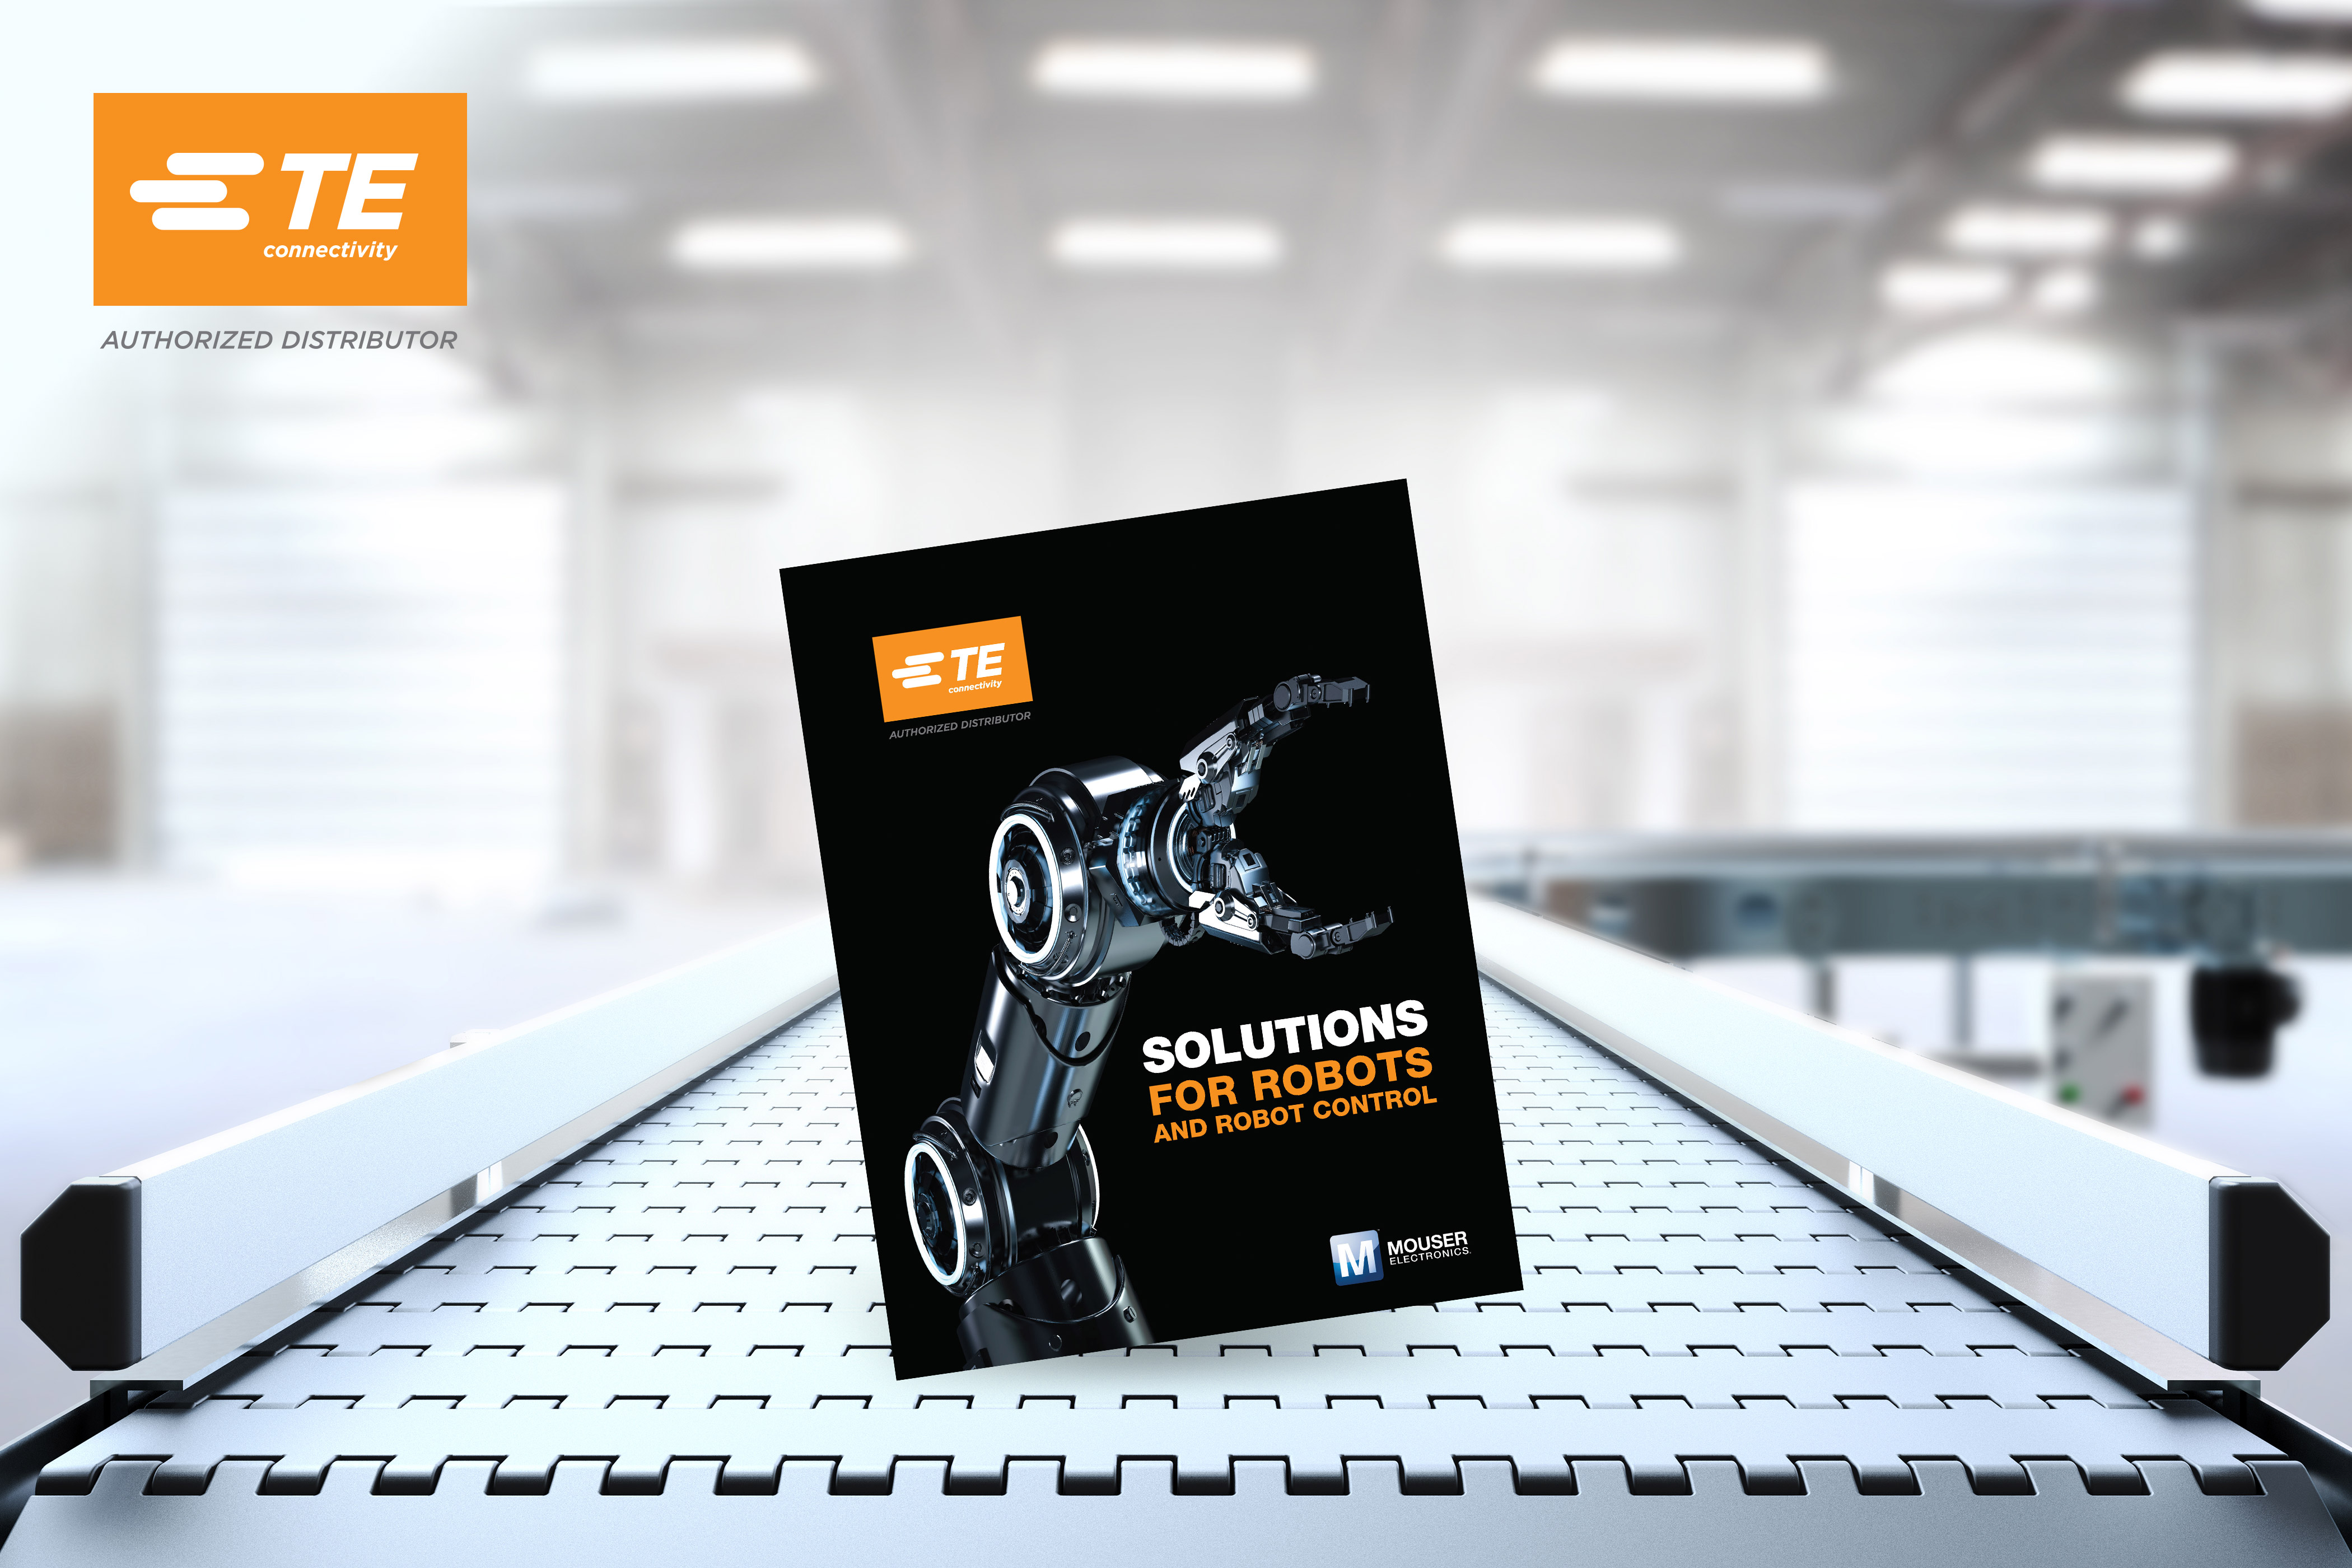 Mouser Electronics, TE Connectivity Survey Robotics in eBook